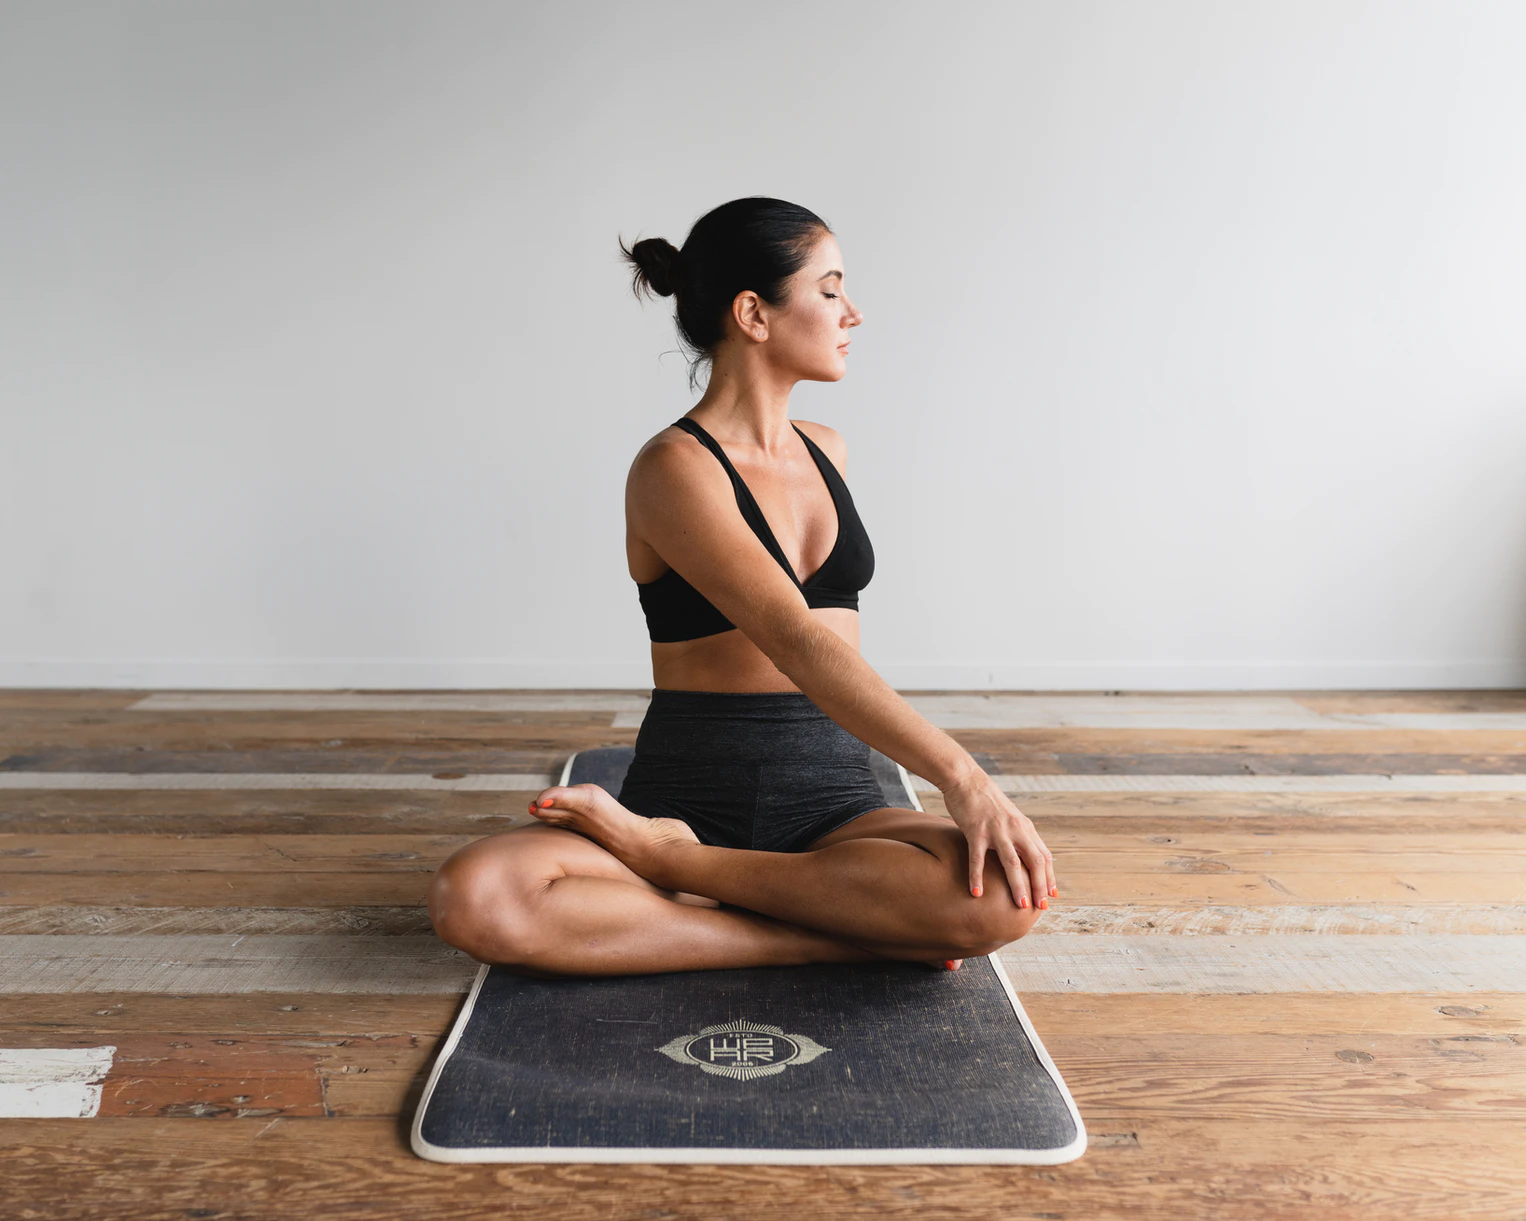 photograph of lady on a yoga mat